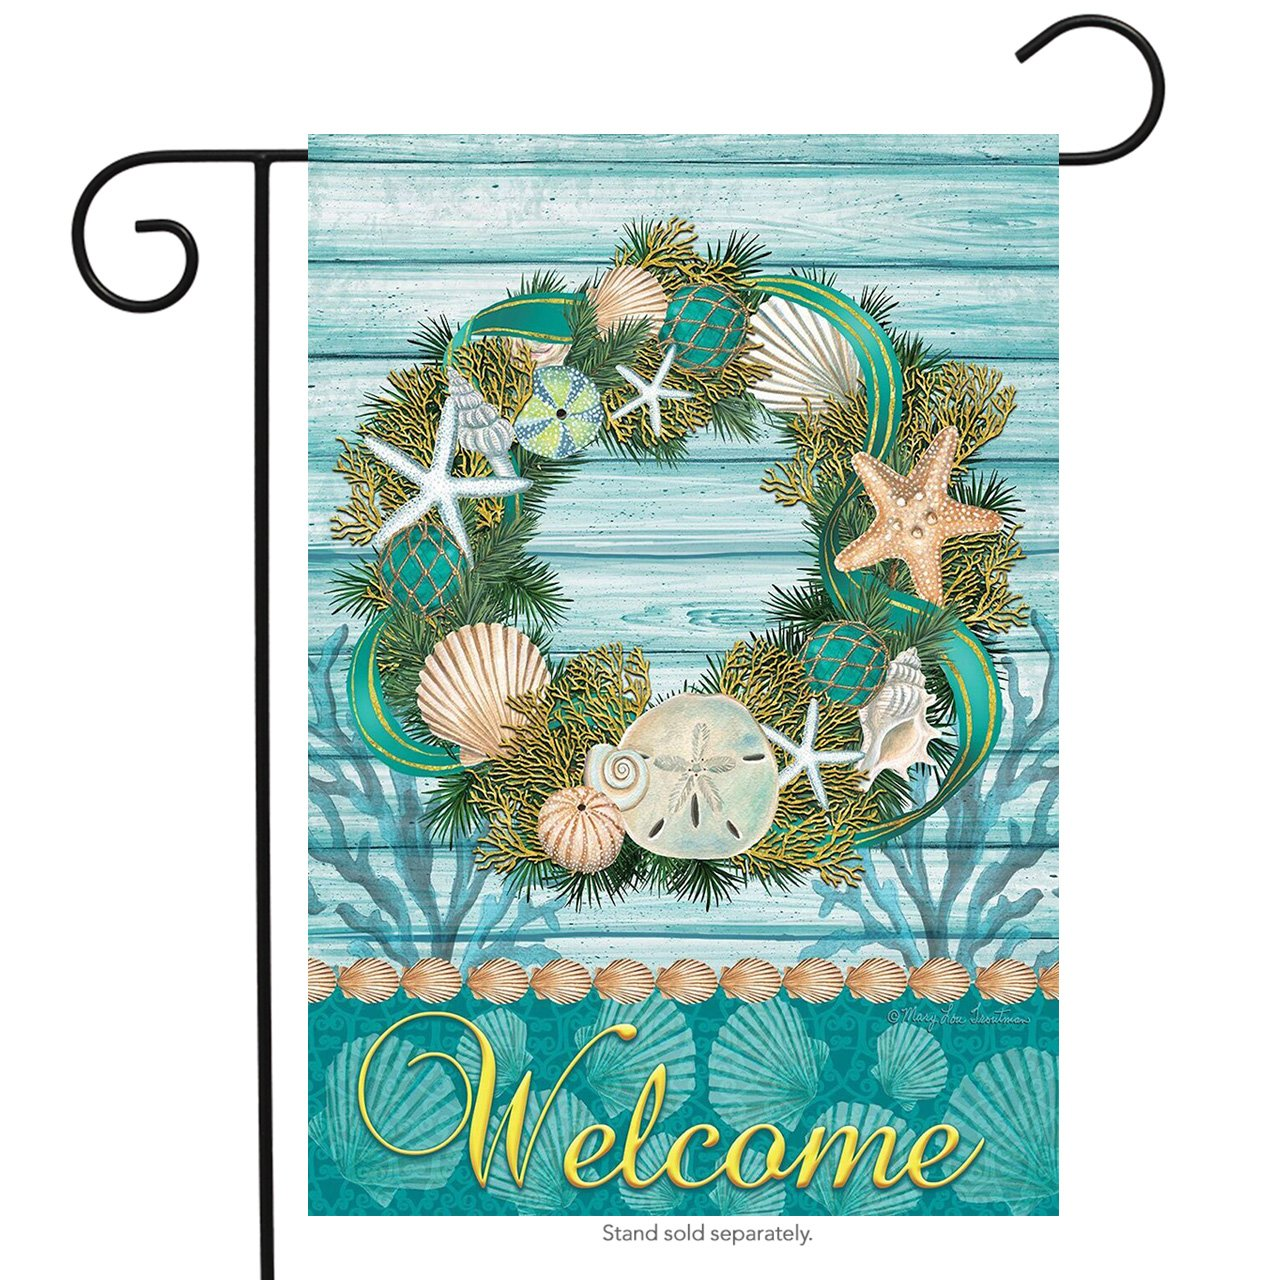 "Briarwood Lane Coastal Wreath Summer Garden Flag Welcome Nautical Shells 12.5"" x 18"""